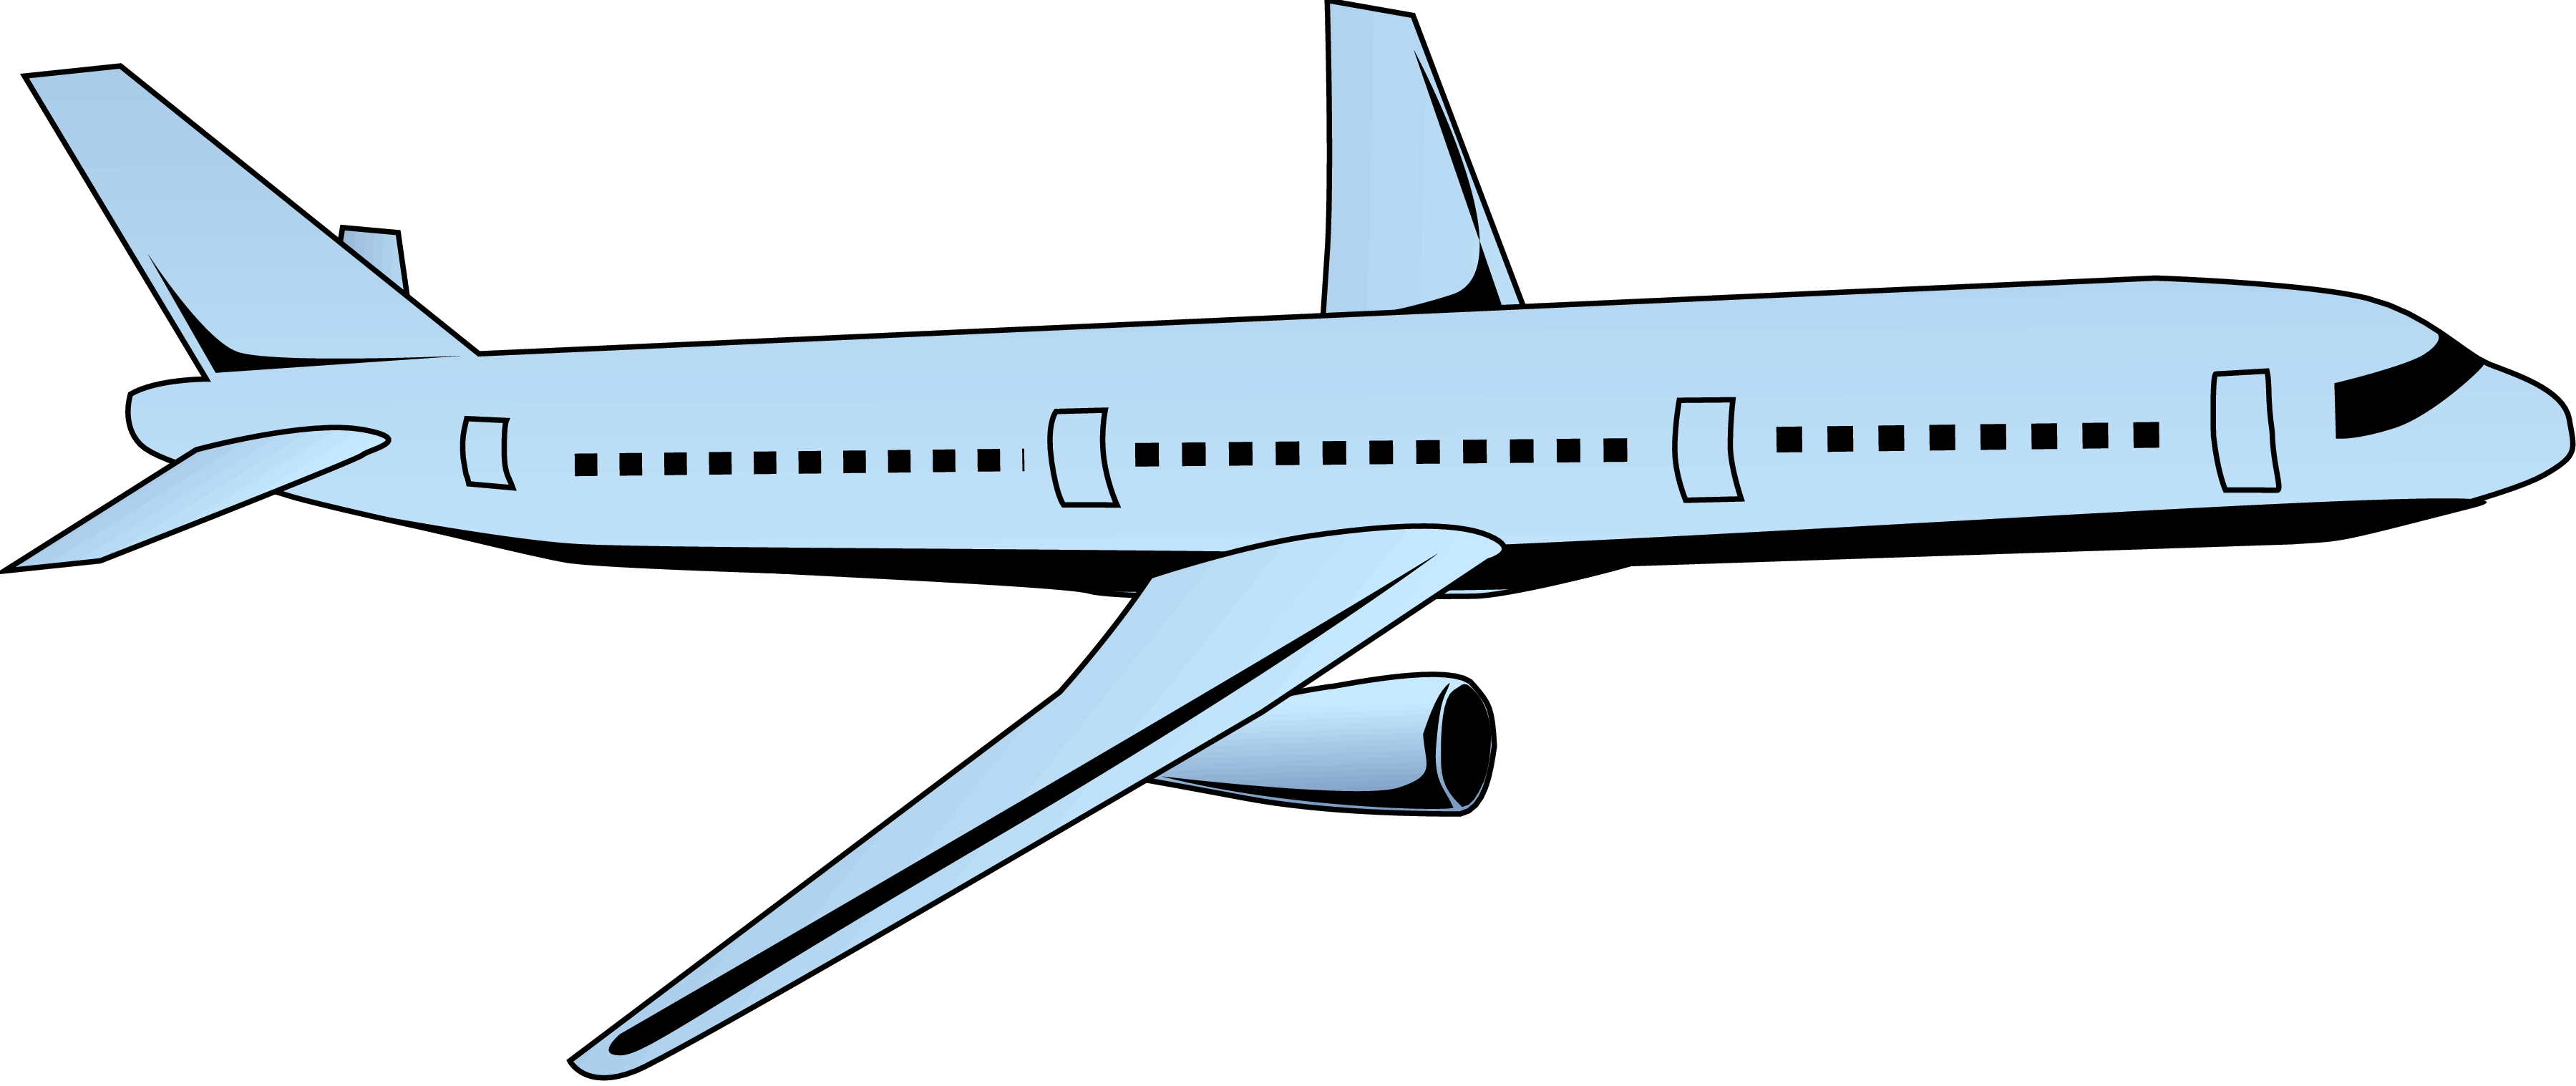 Airplane clipart png. Download aircraft free transparent